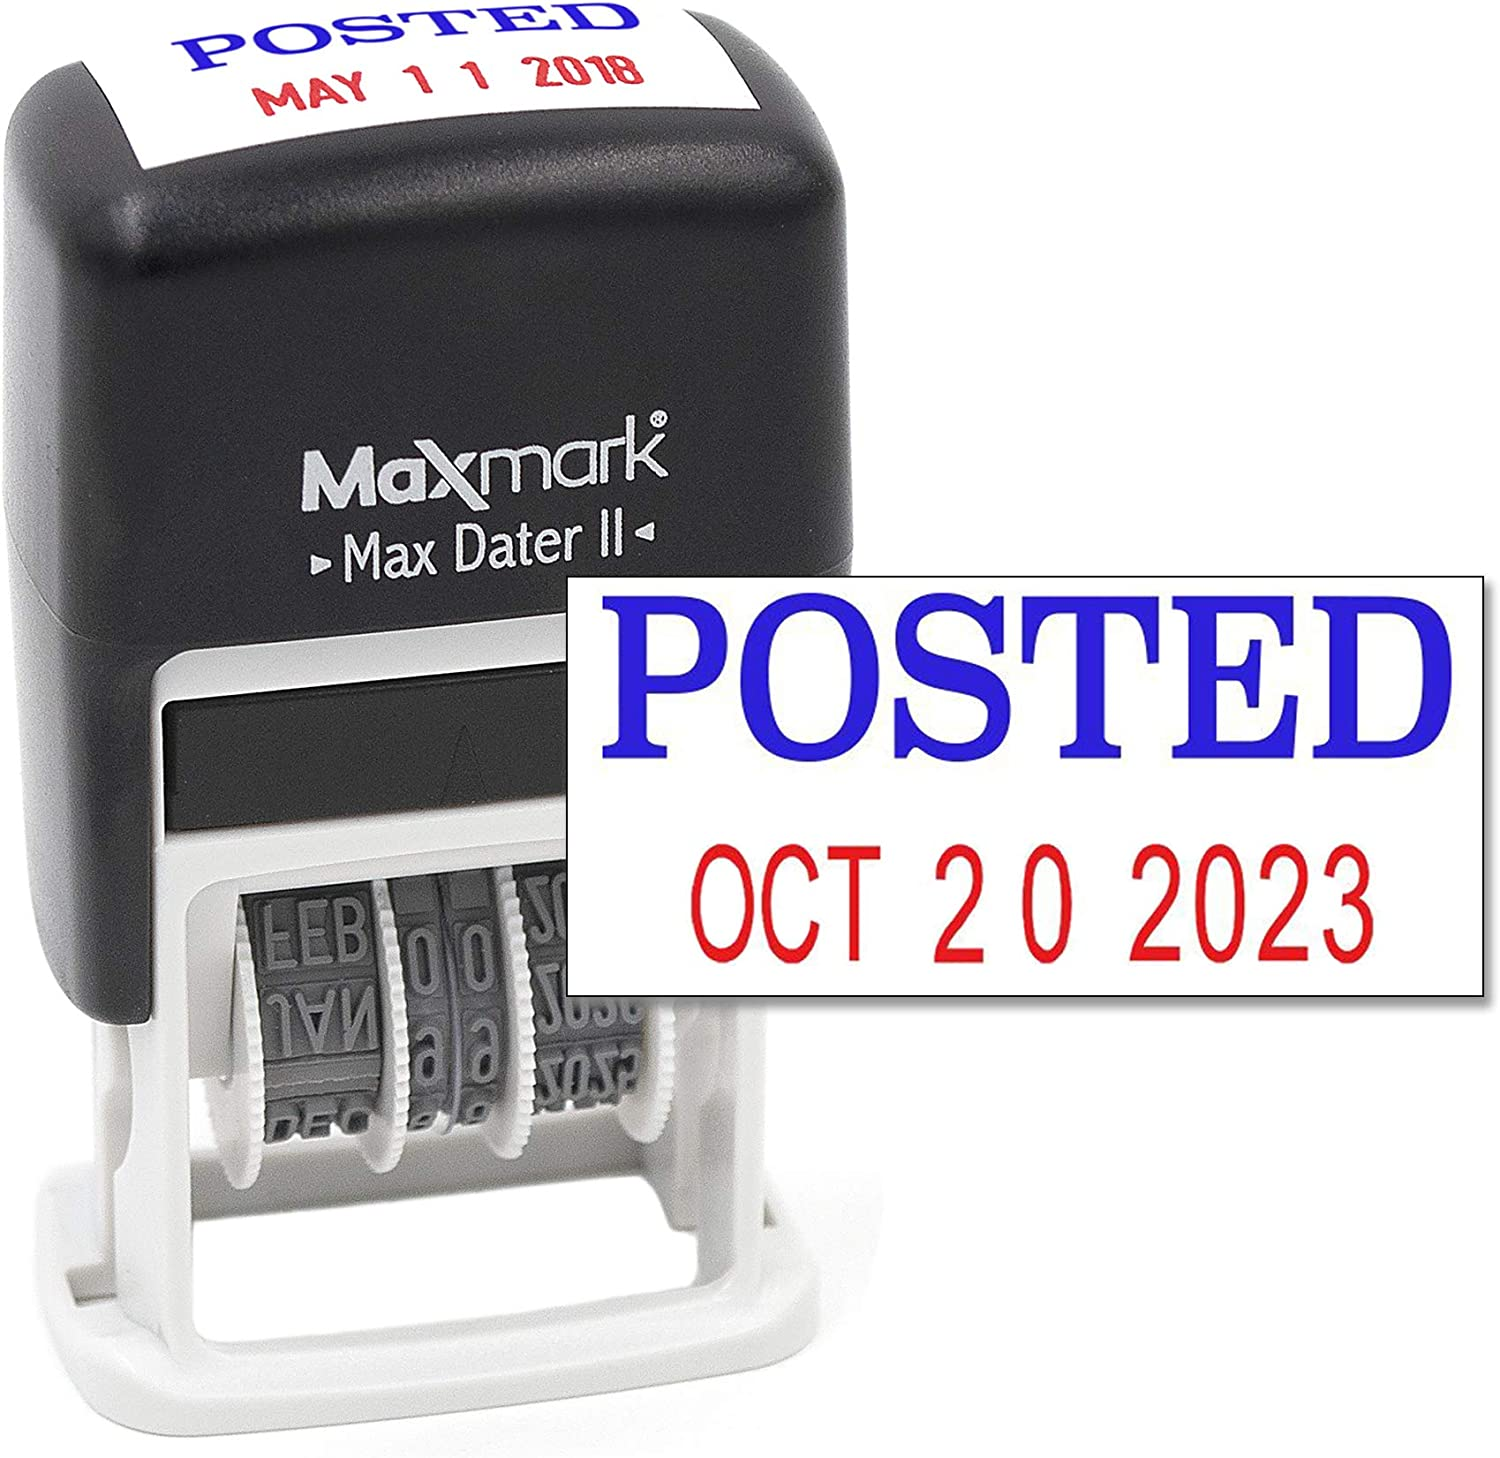 Max Dater II 12-Year Band MaxMark Self-Inking Rubber Date Office Stamp with Received Phrase Blue Ink /& Date RED Ink